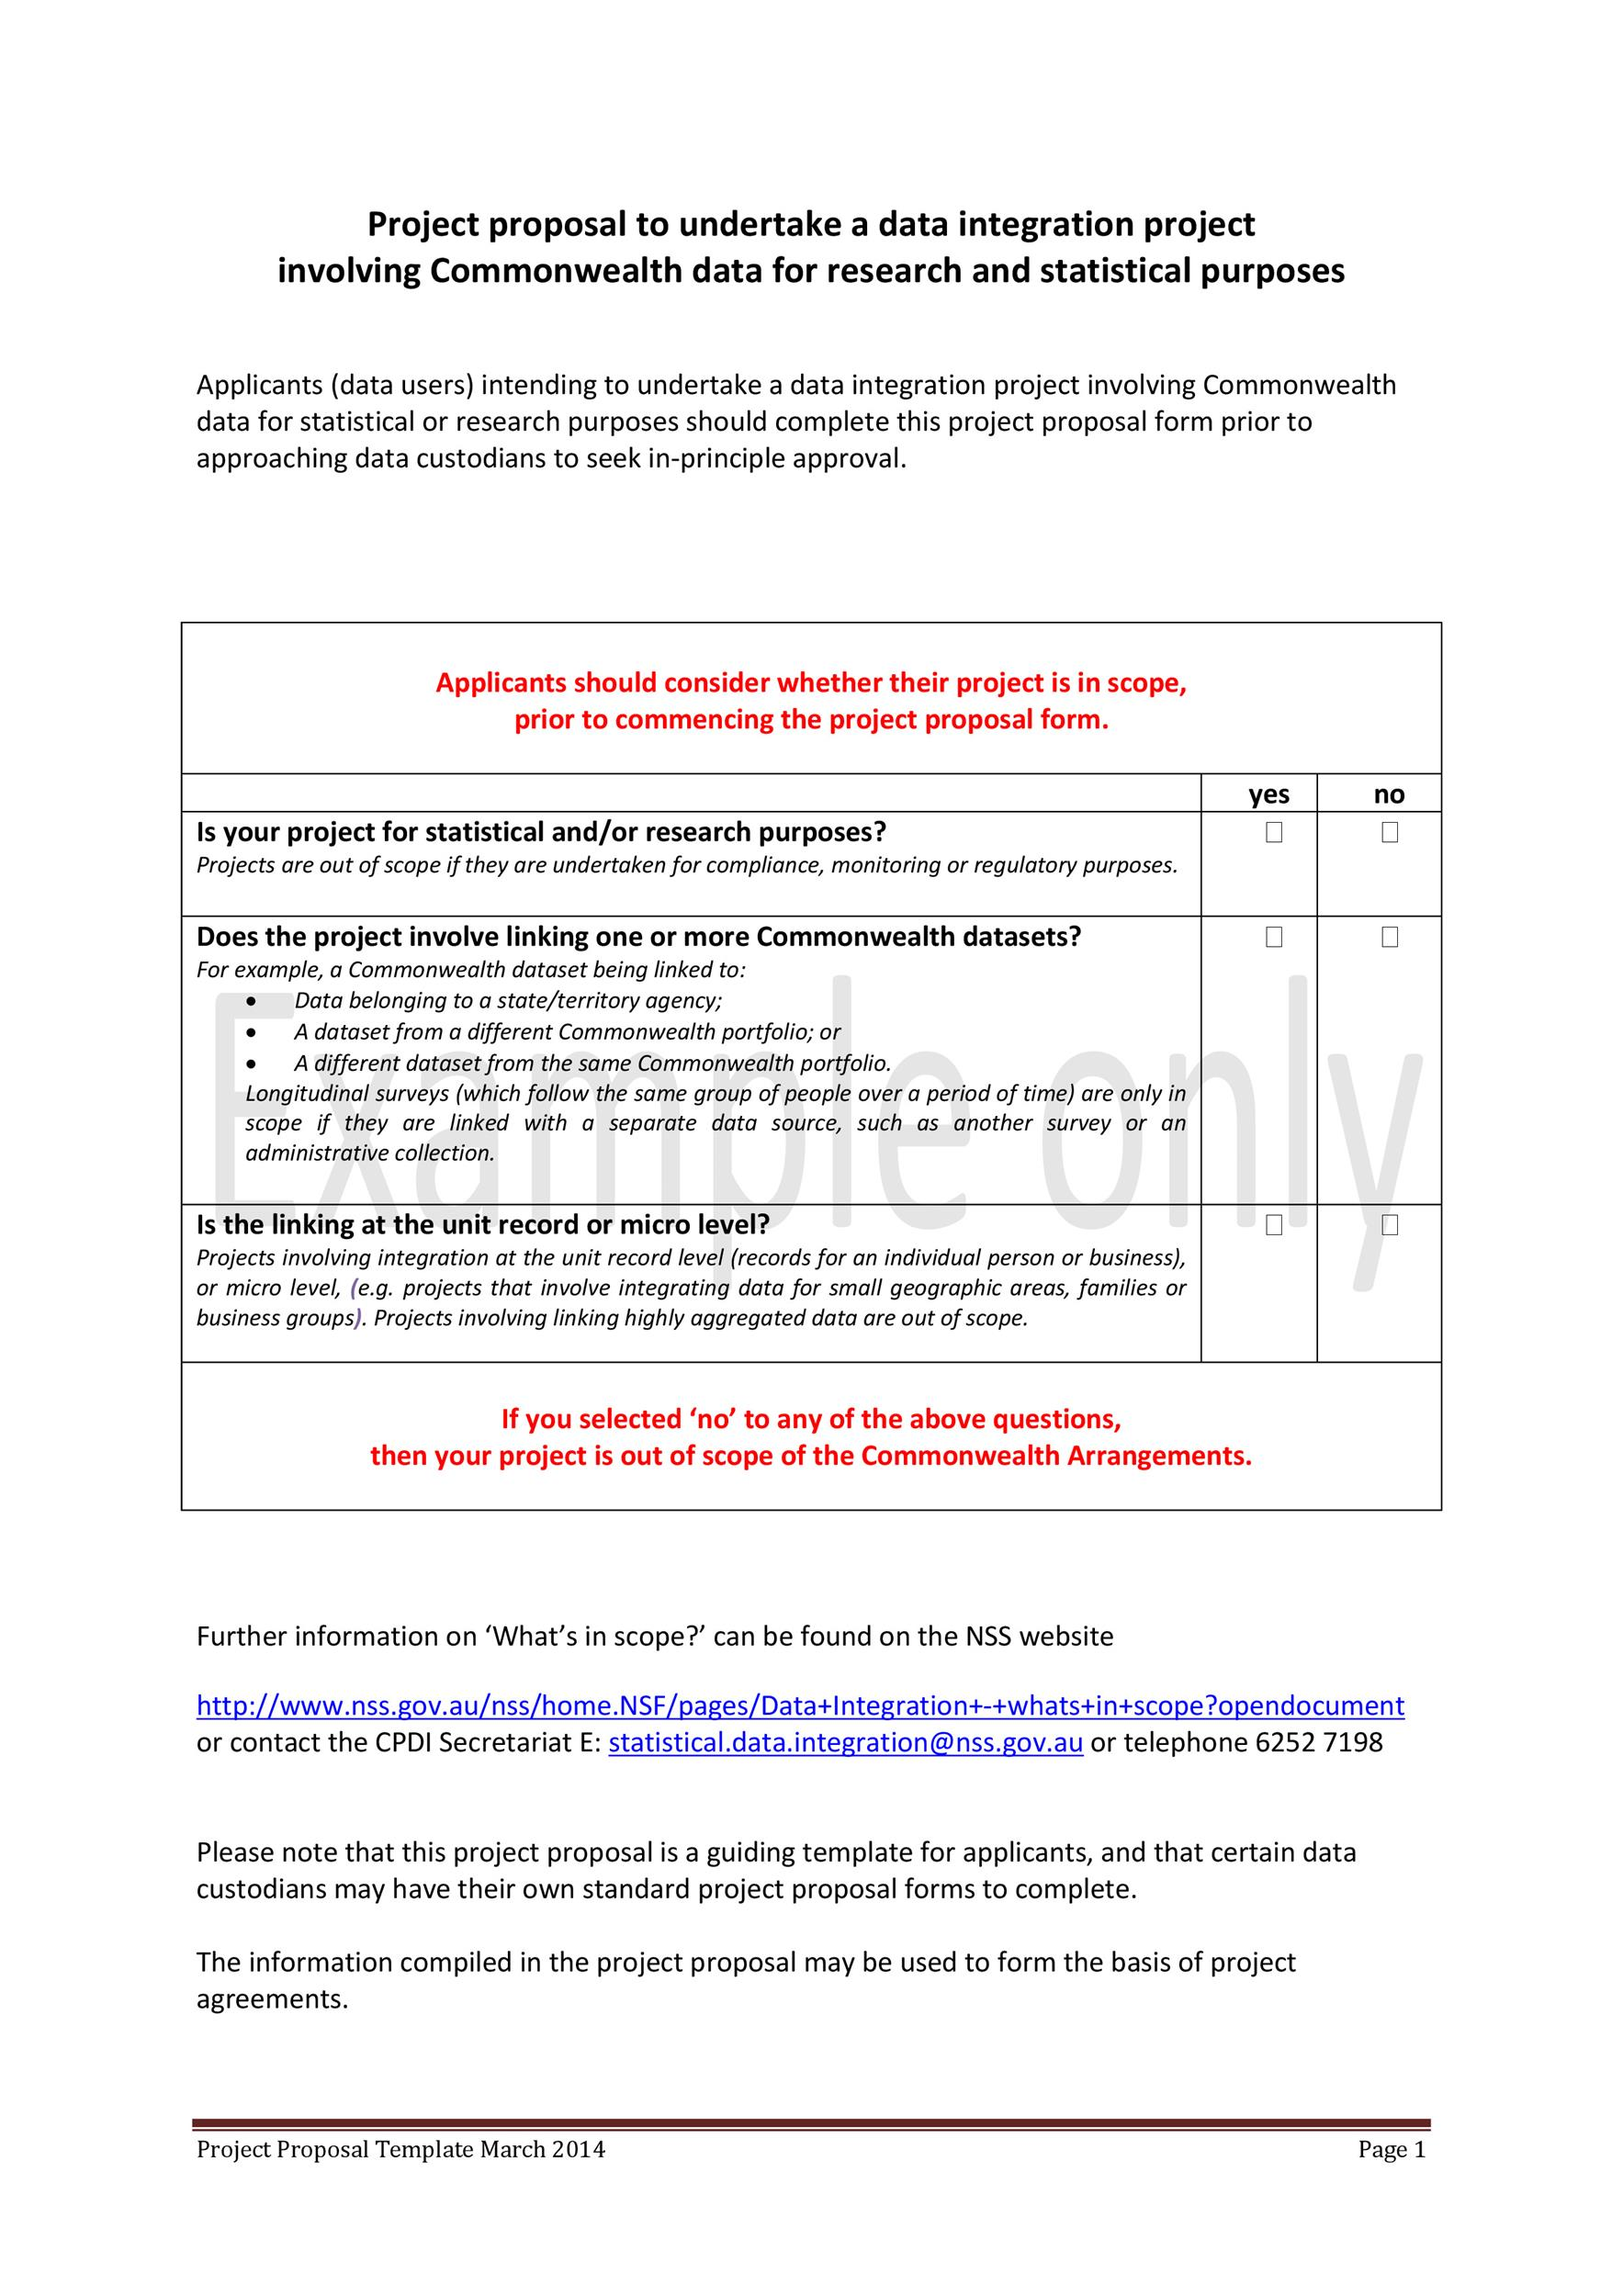 printable project proposal template 06 - Project Proposal